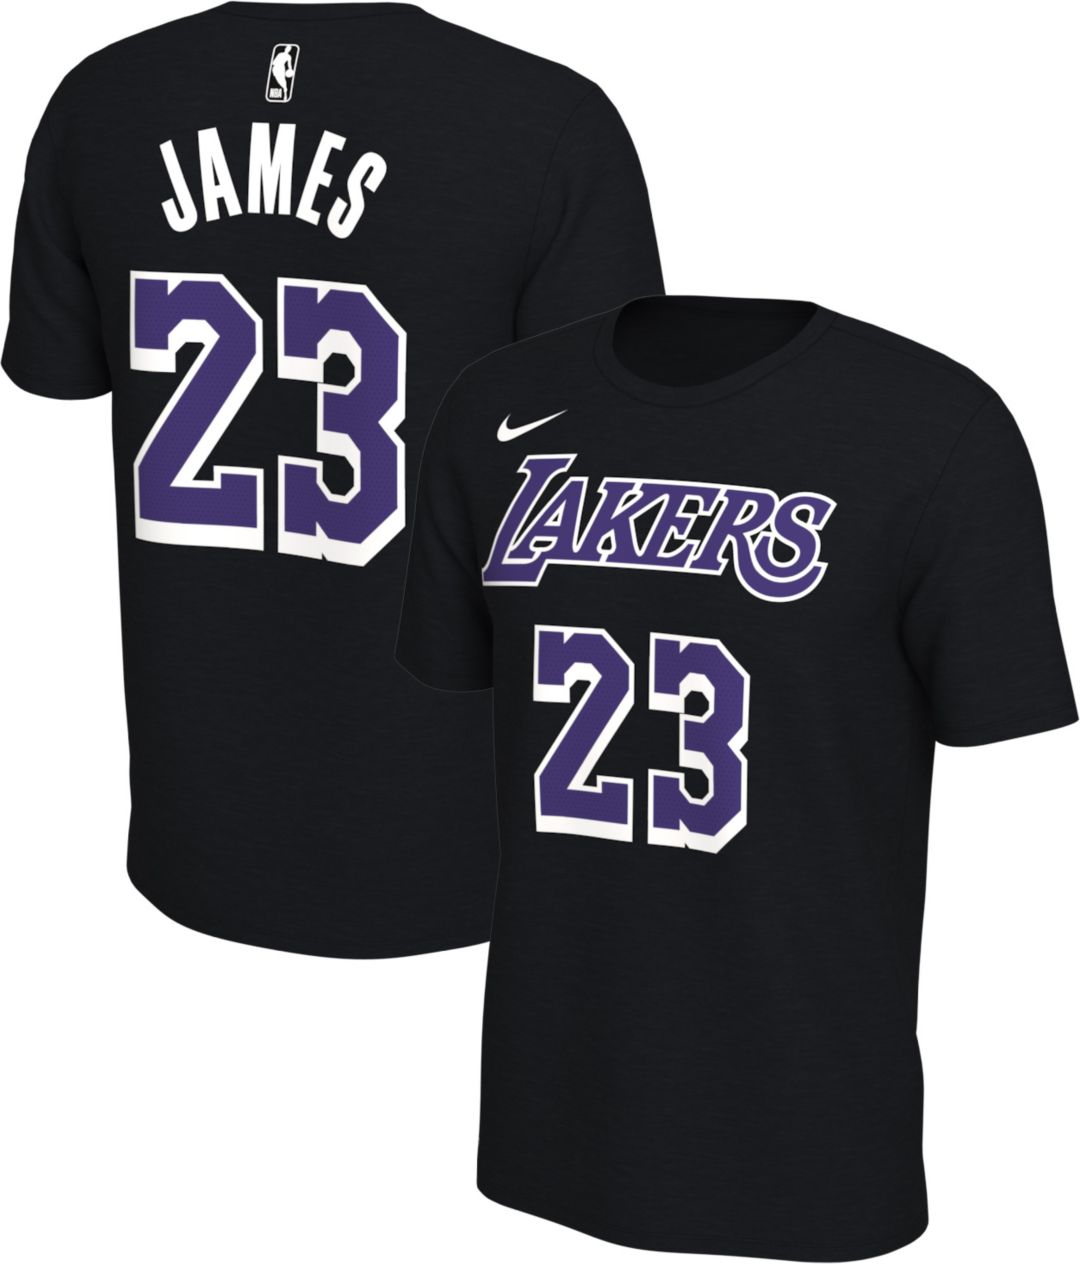 promo code d376a f9907 Nike Men's Los Angeles Lakers LeBron James #23 Dri-FIT Black T-Shirt